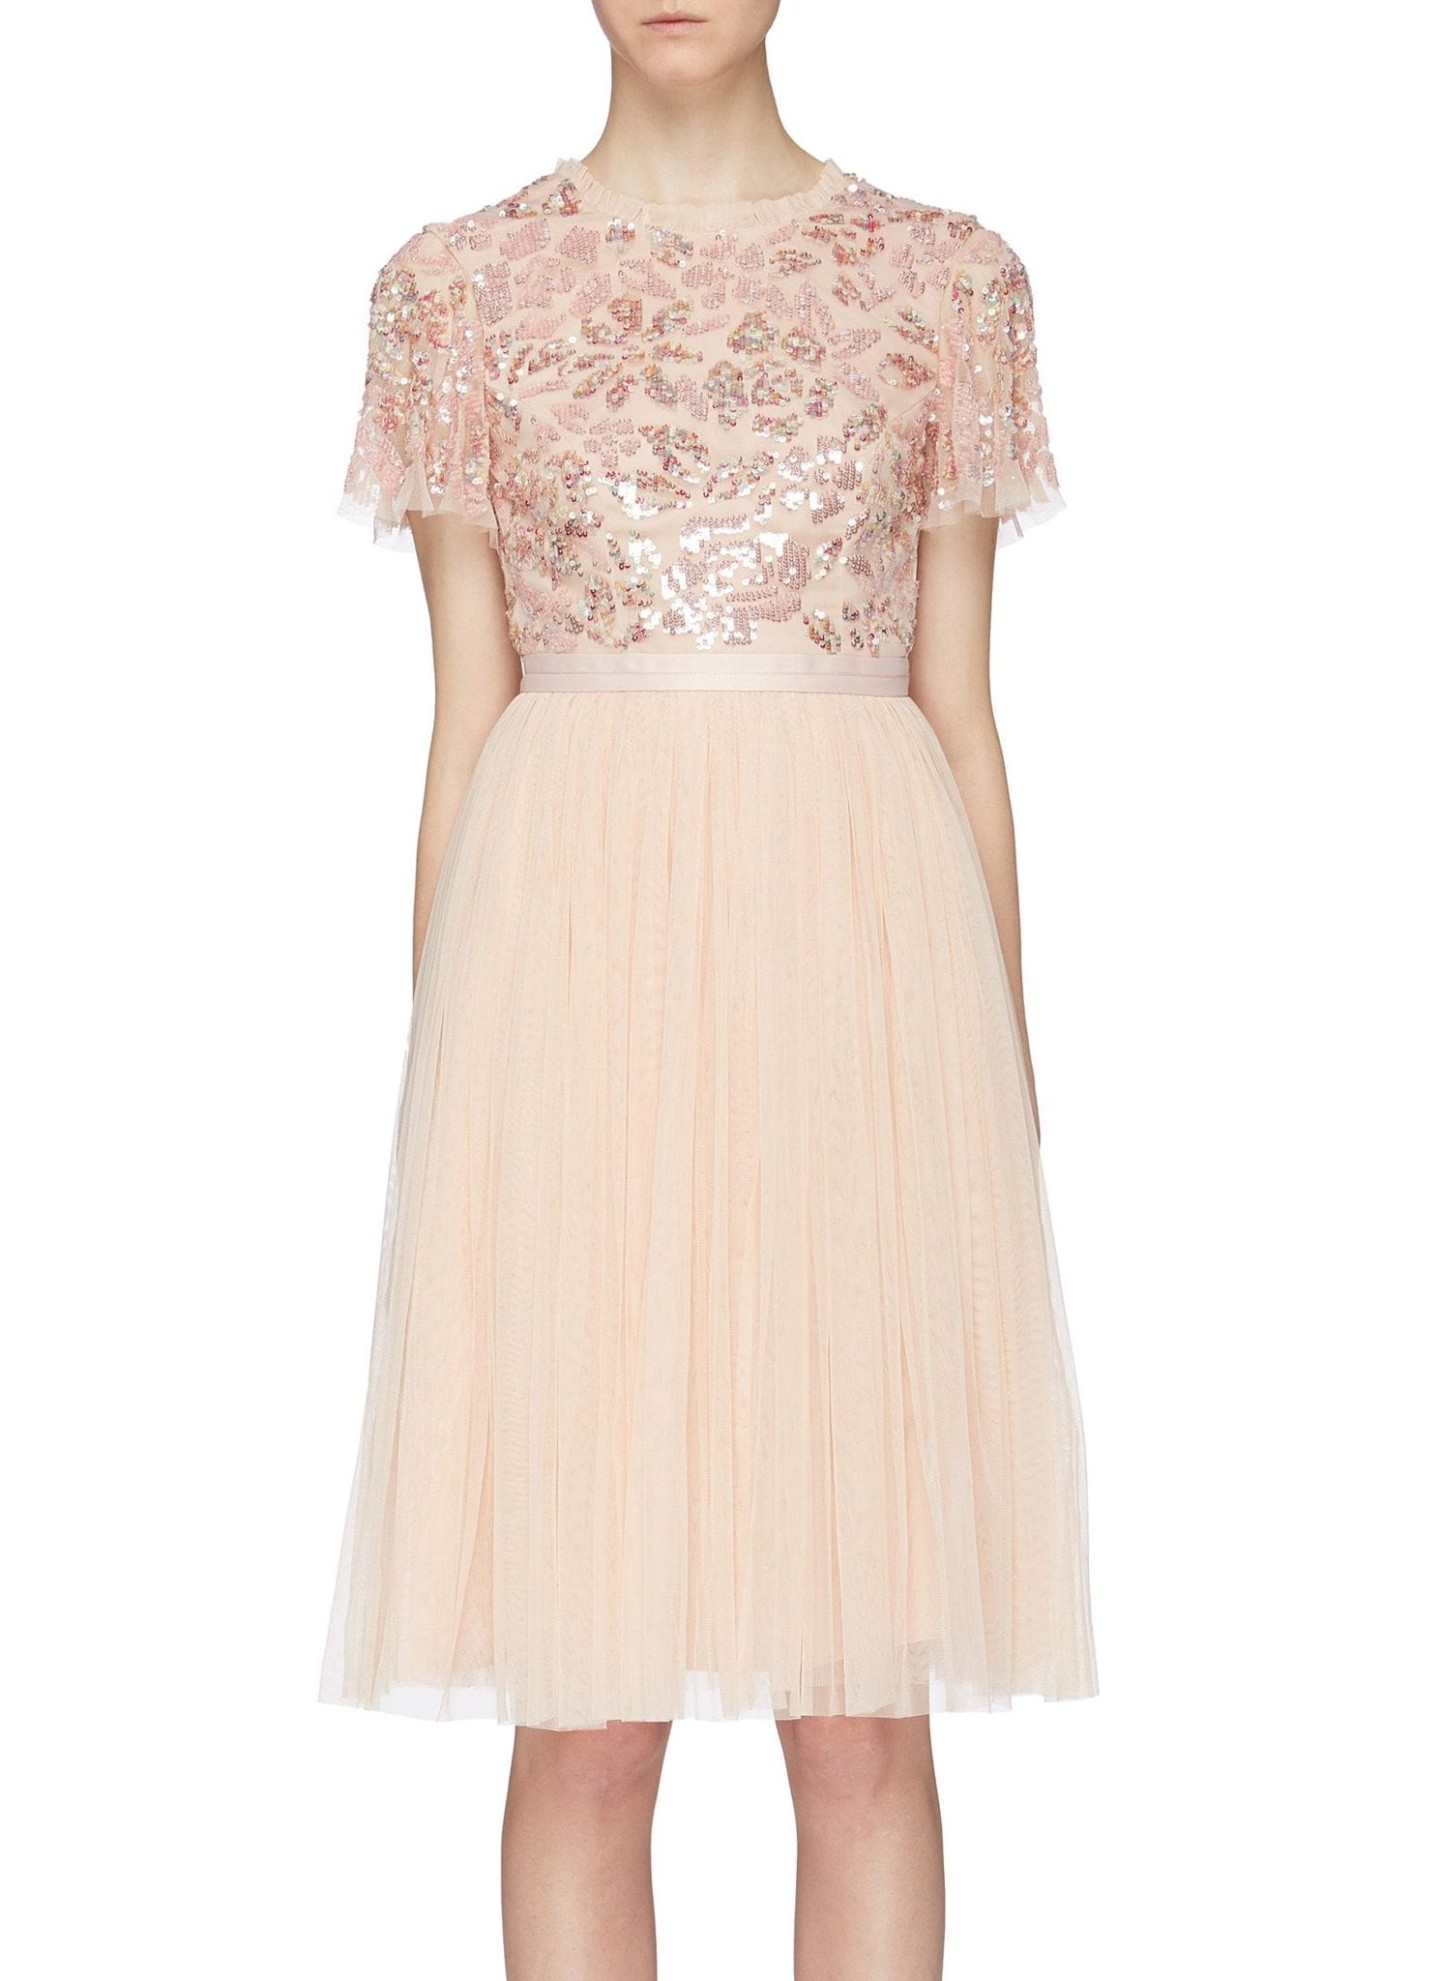 NEEDLE & THREAD 'Dream Rose' Cutout Back Sequin Floral Tulle Pink Dress